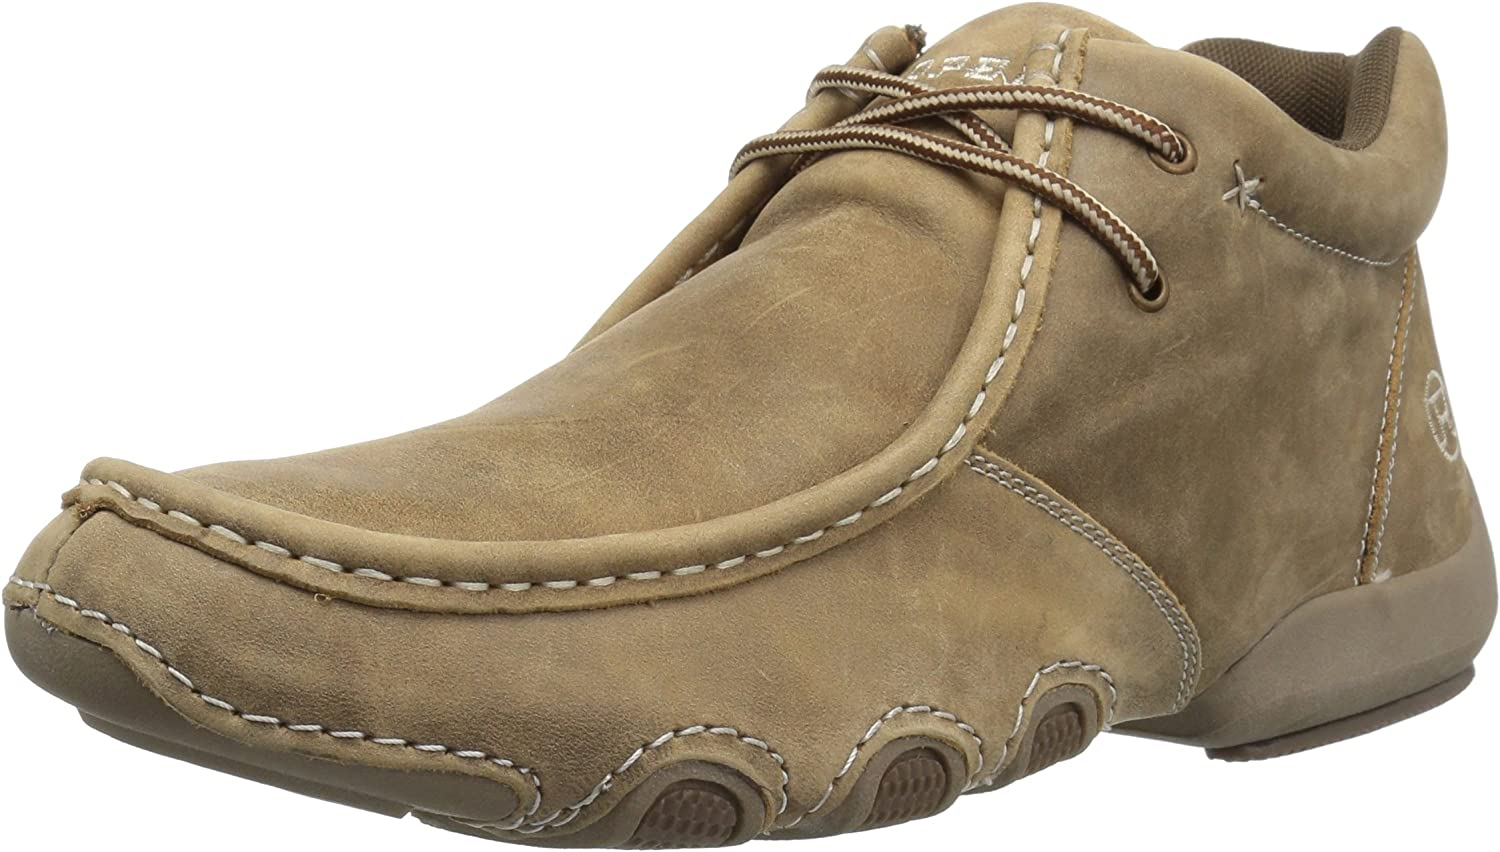 Roper Men's High Cruiser Boot Max 61% OFF Opening large release sale Chukka